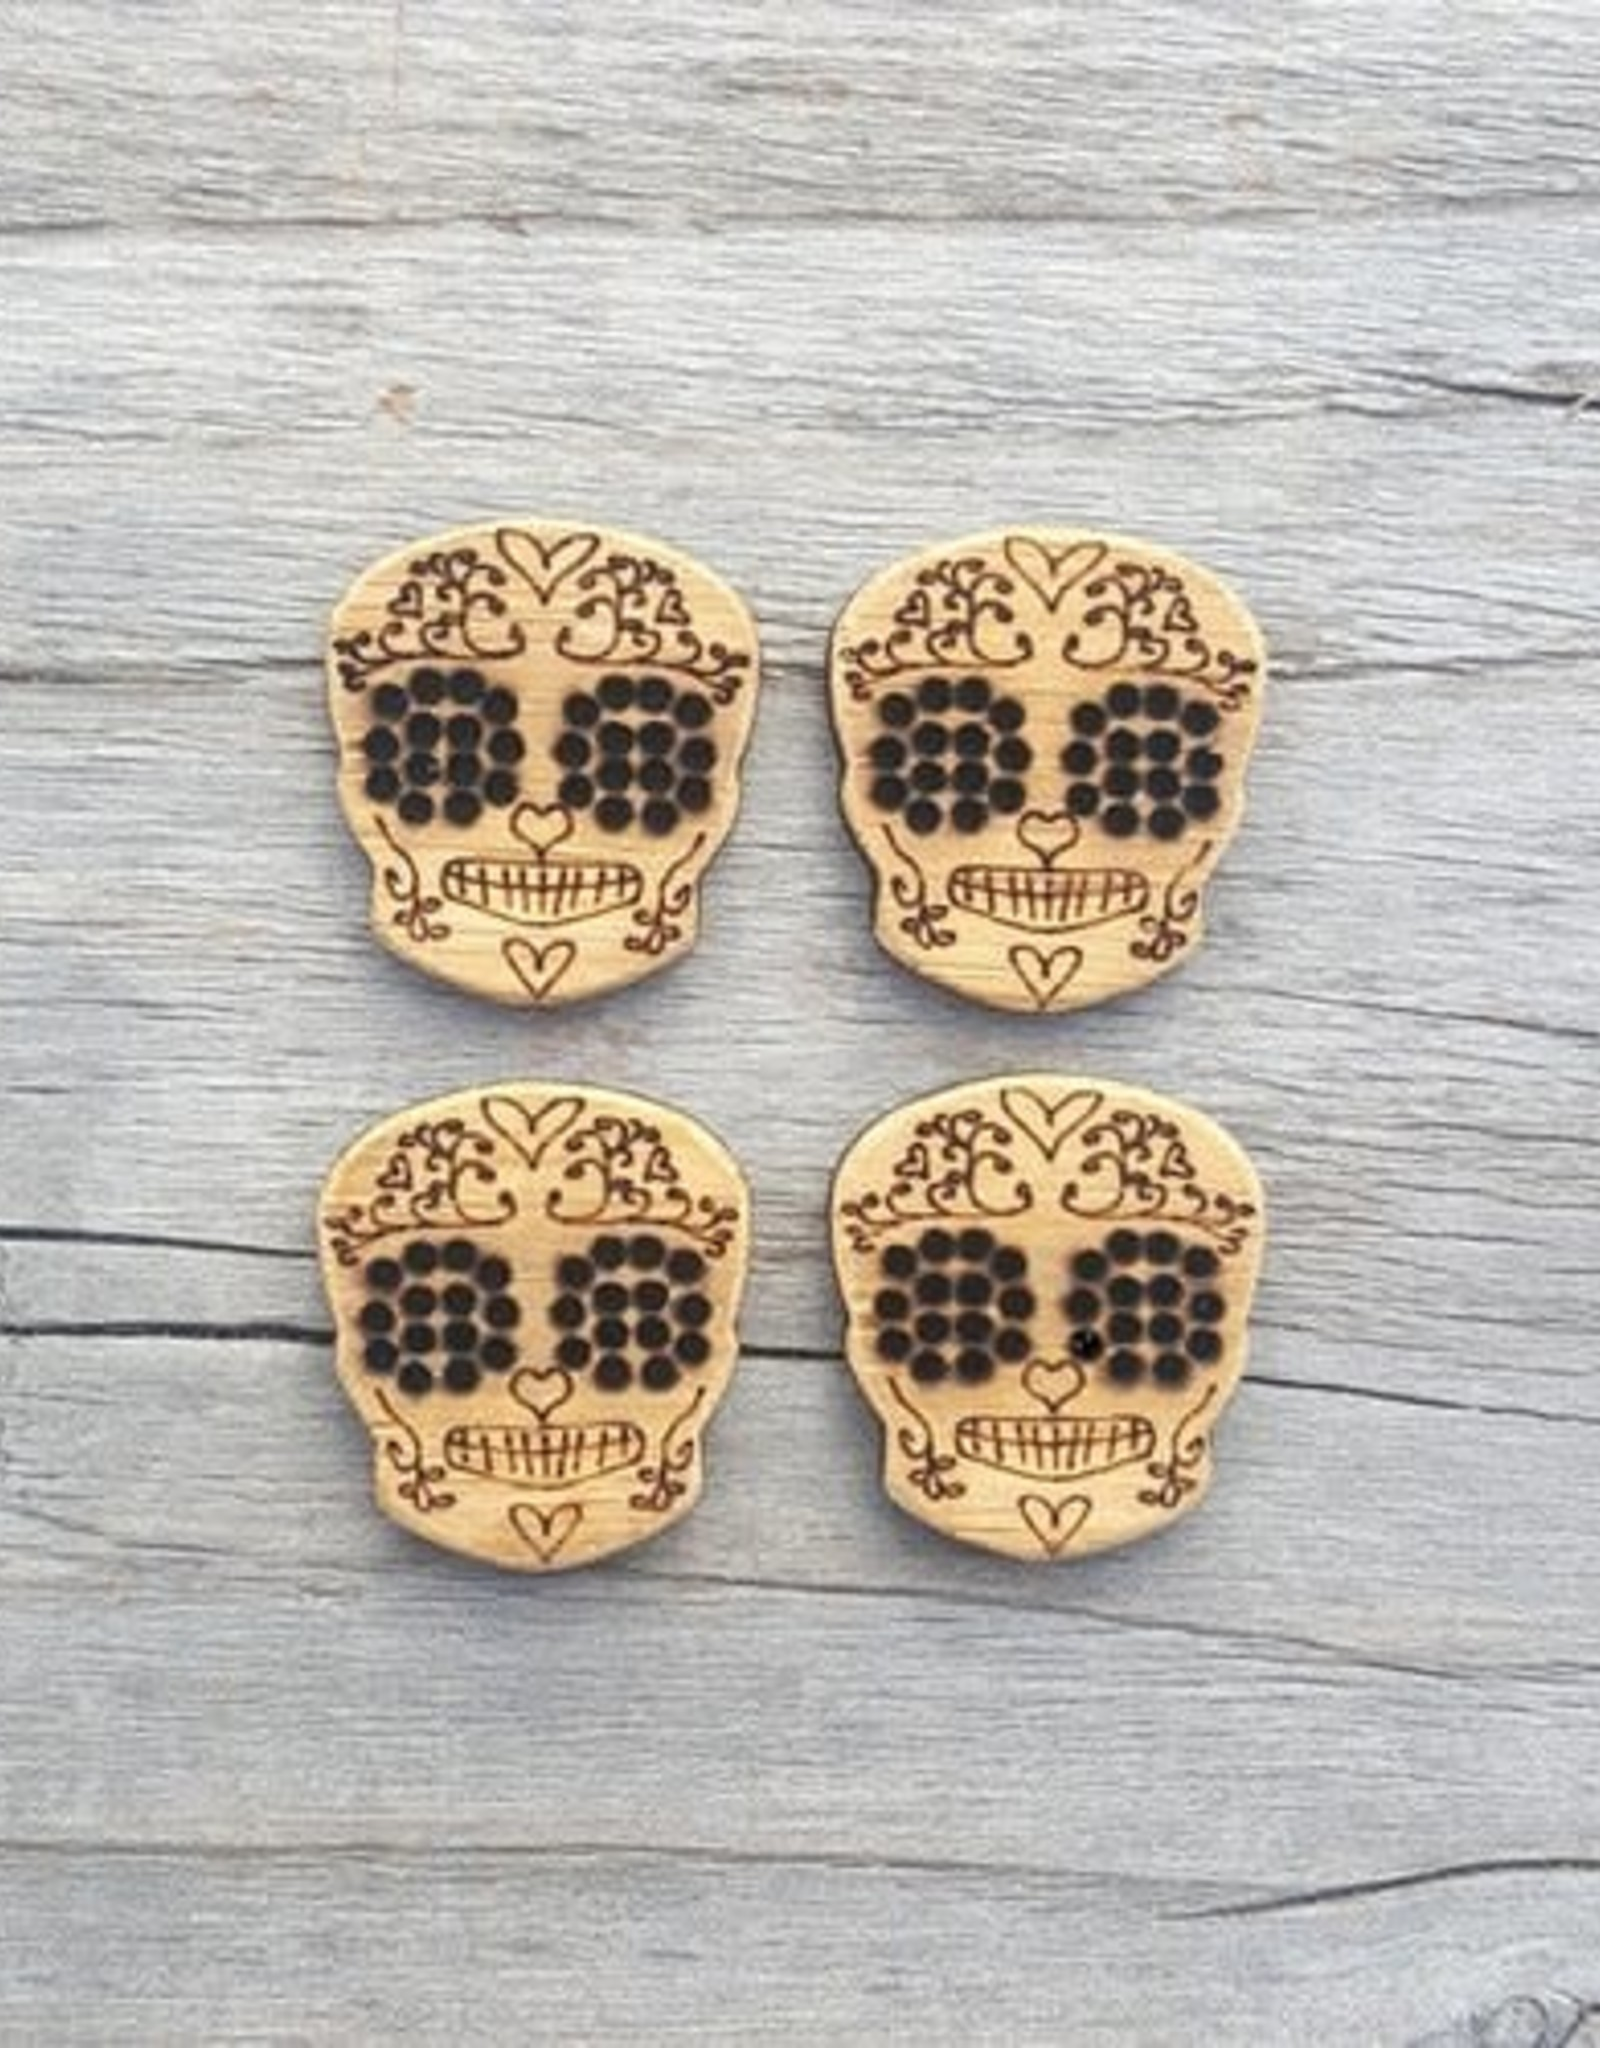 Katrinkles Buttons & Tools Skull Stitchable Buttons - Card of 4